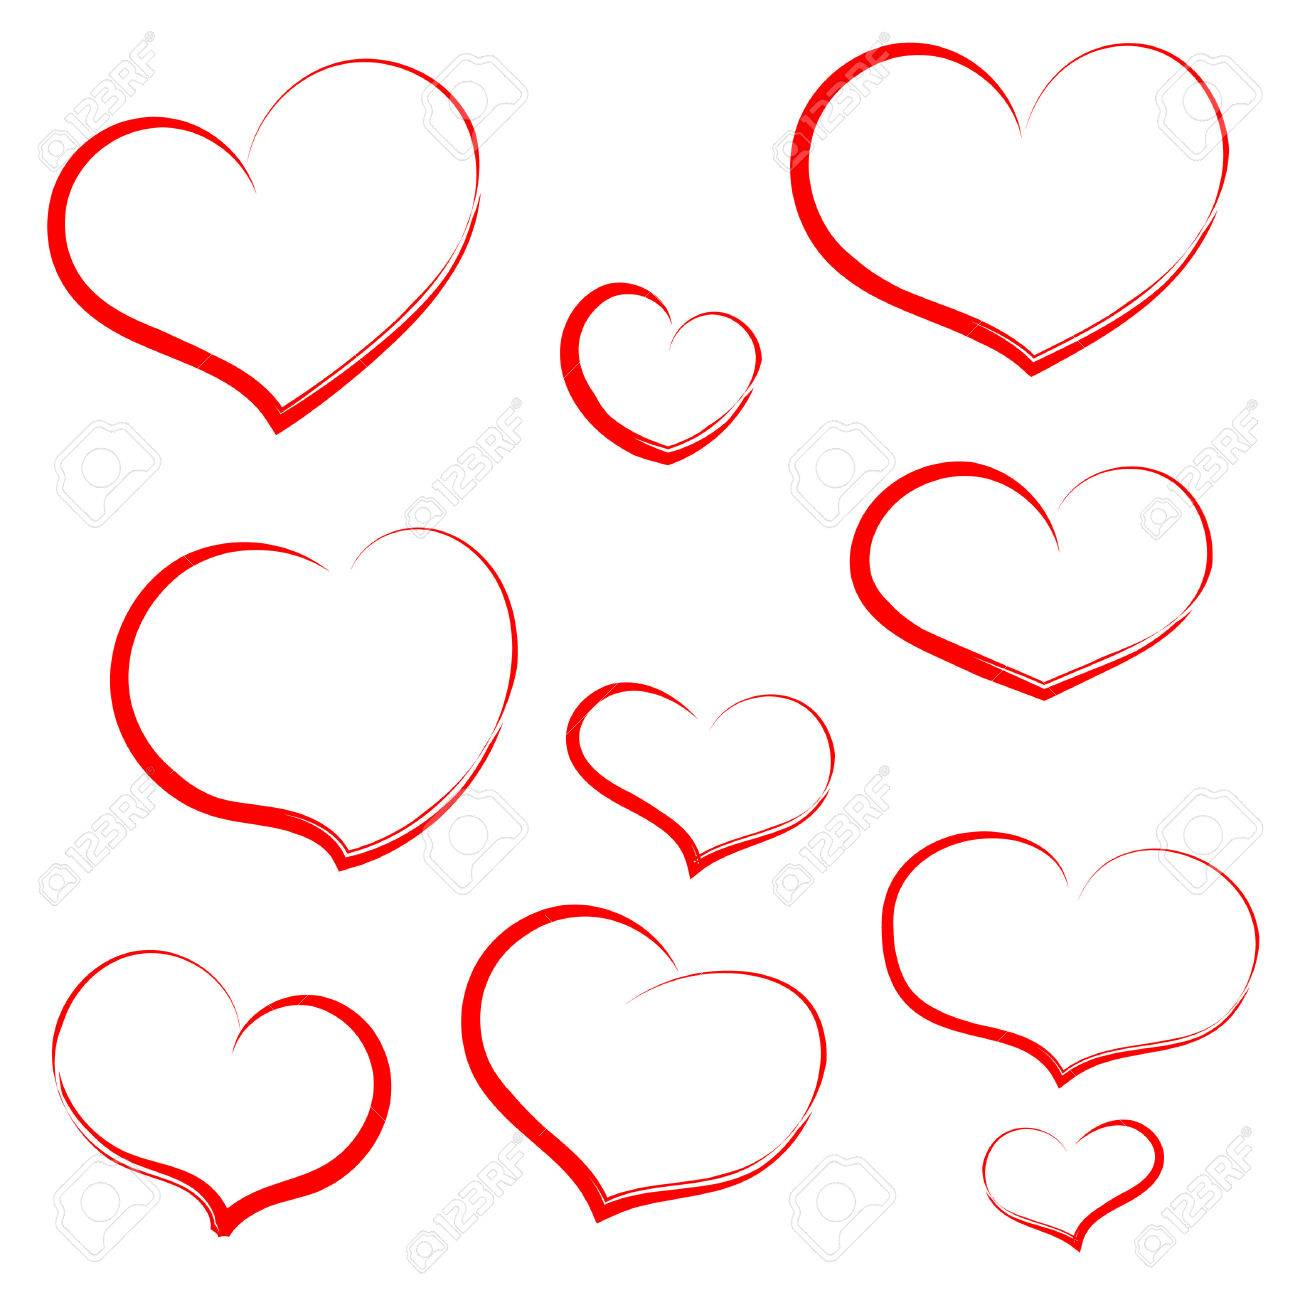 Set Hand Draw Heart In Red Outline Hearts For Wedding Valentine